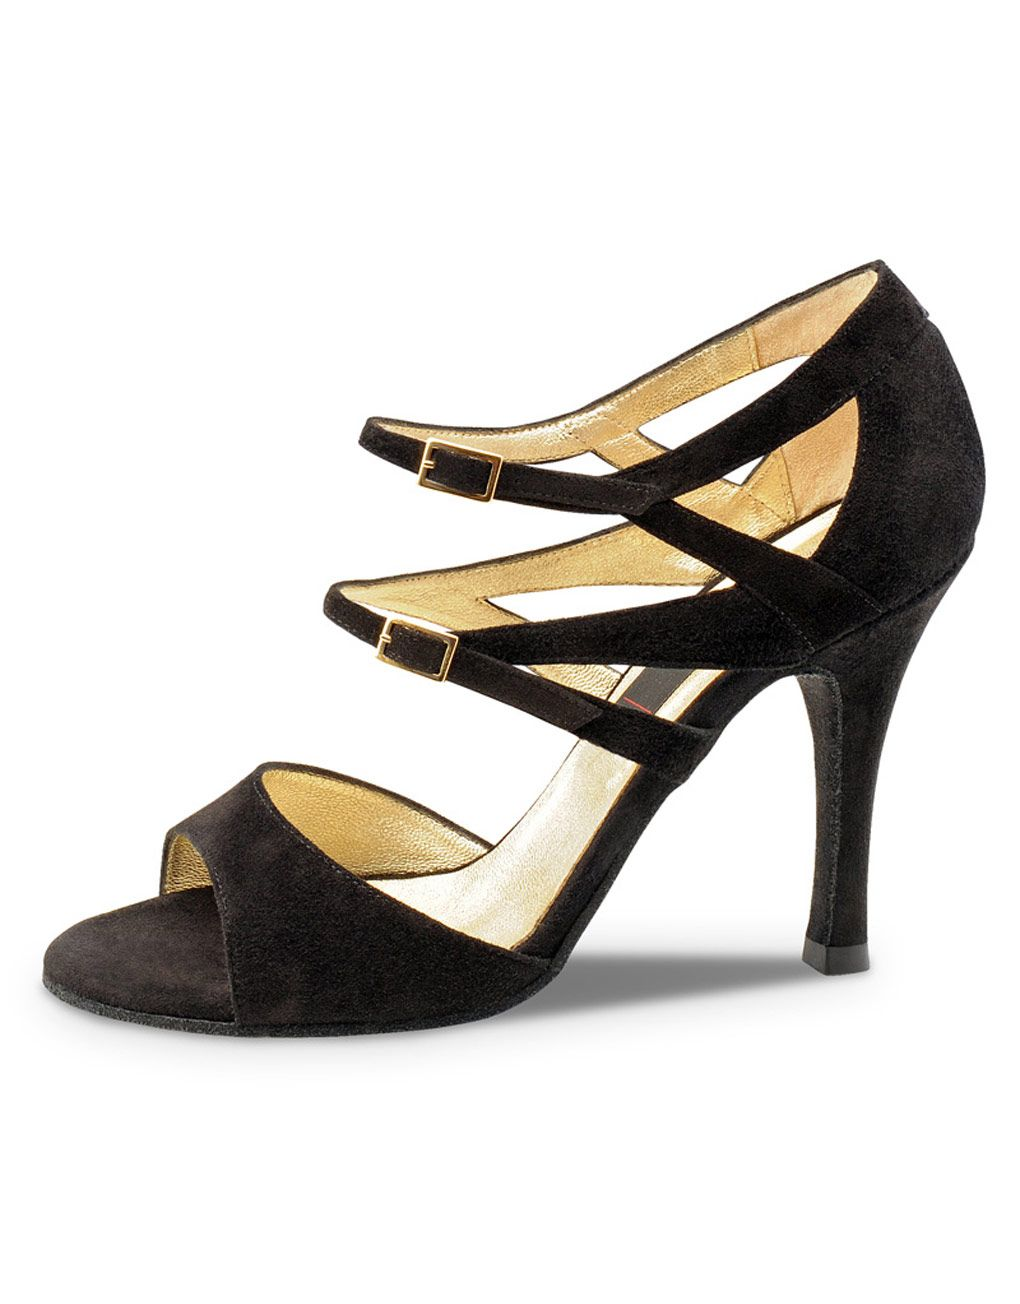 afce8899b2212 Barbara tango, ballroom and salsa dance shoe for women by Nueva Epoca.  Nappa suede black leather with double ankle strap